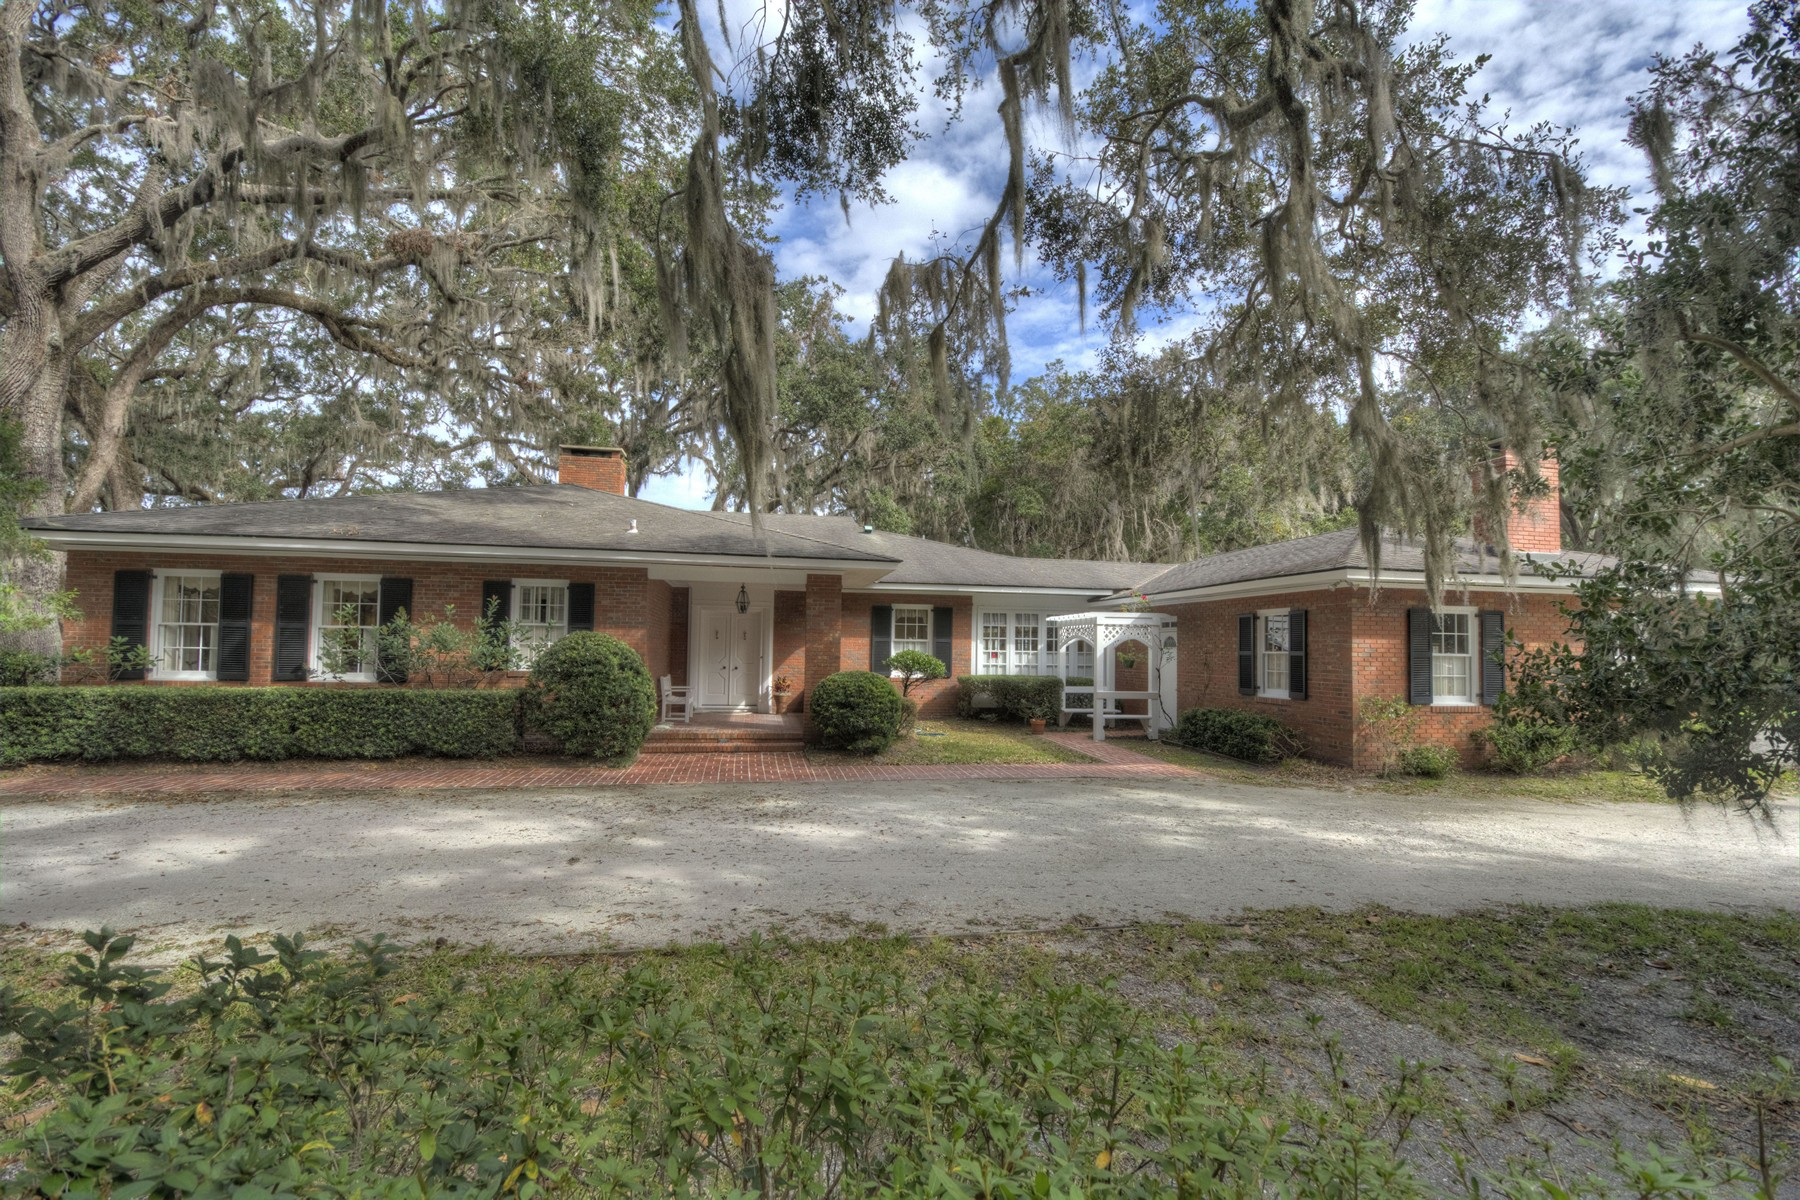 Single Family Home for Sale at 400 Mimosa Drive 400 Mimosa Drive St. Simons Island, Georgia 31522 United States